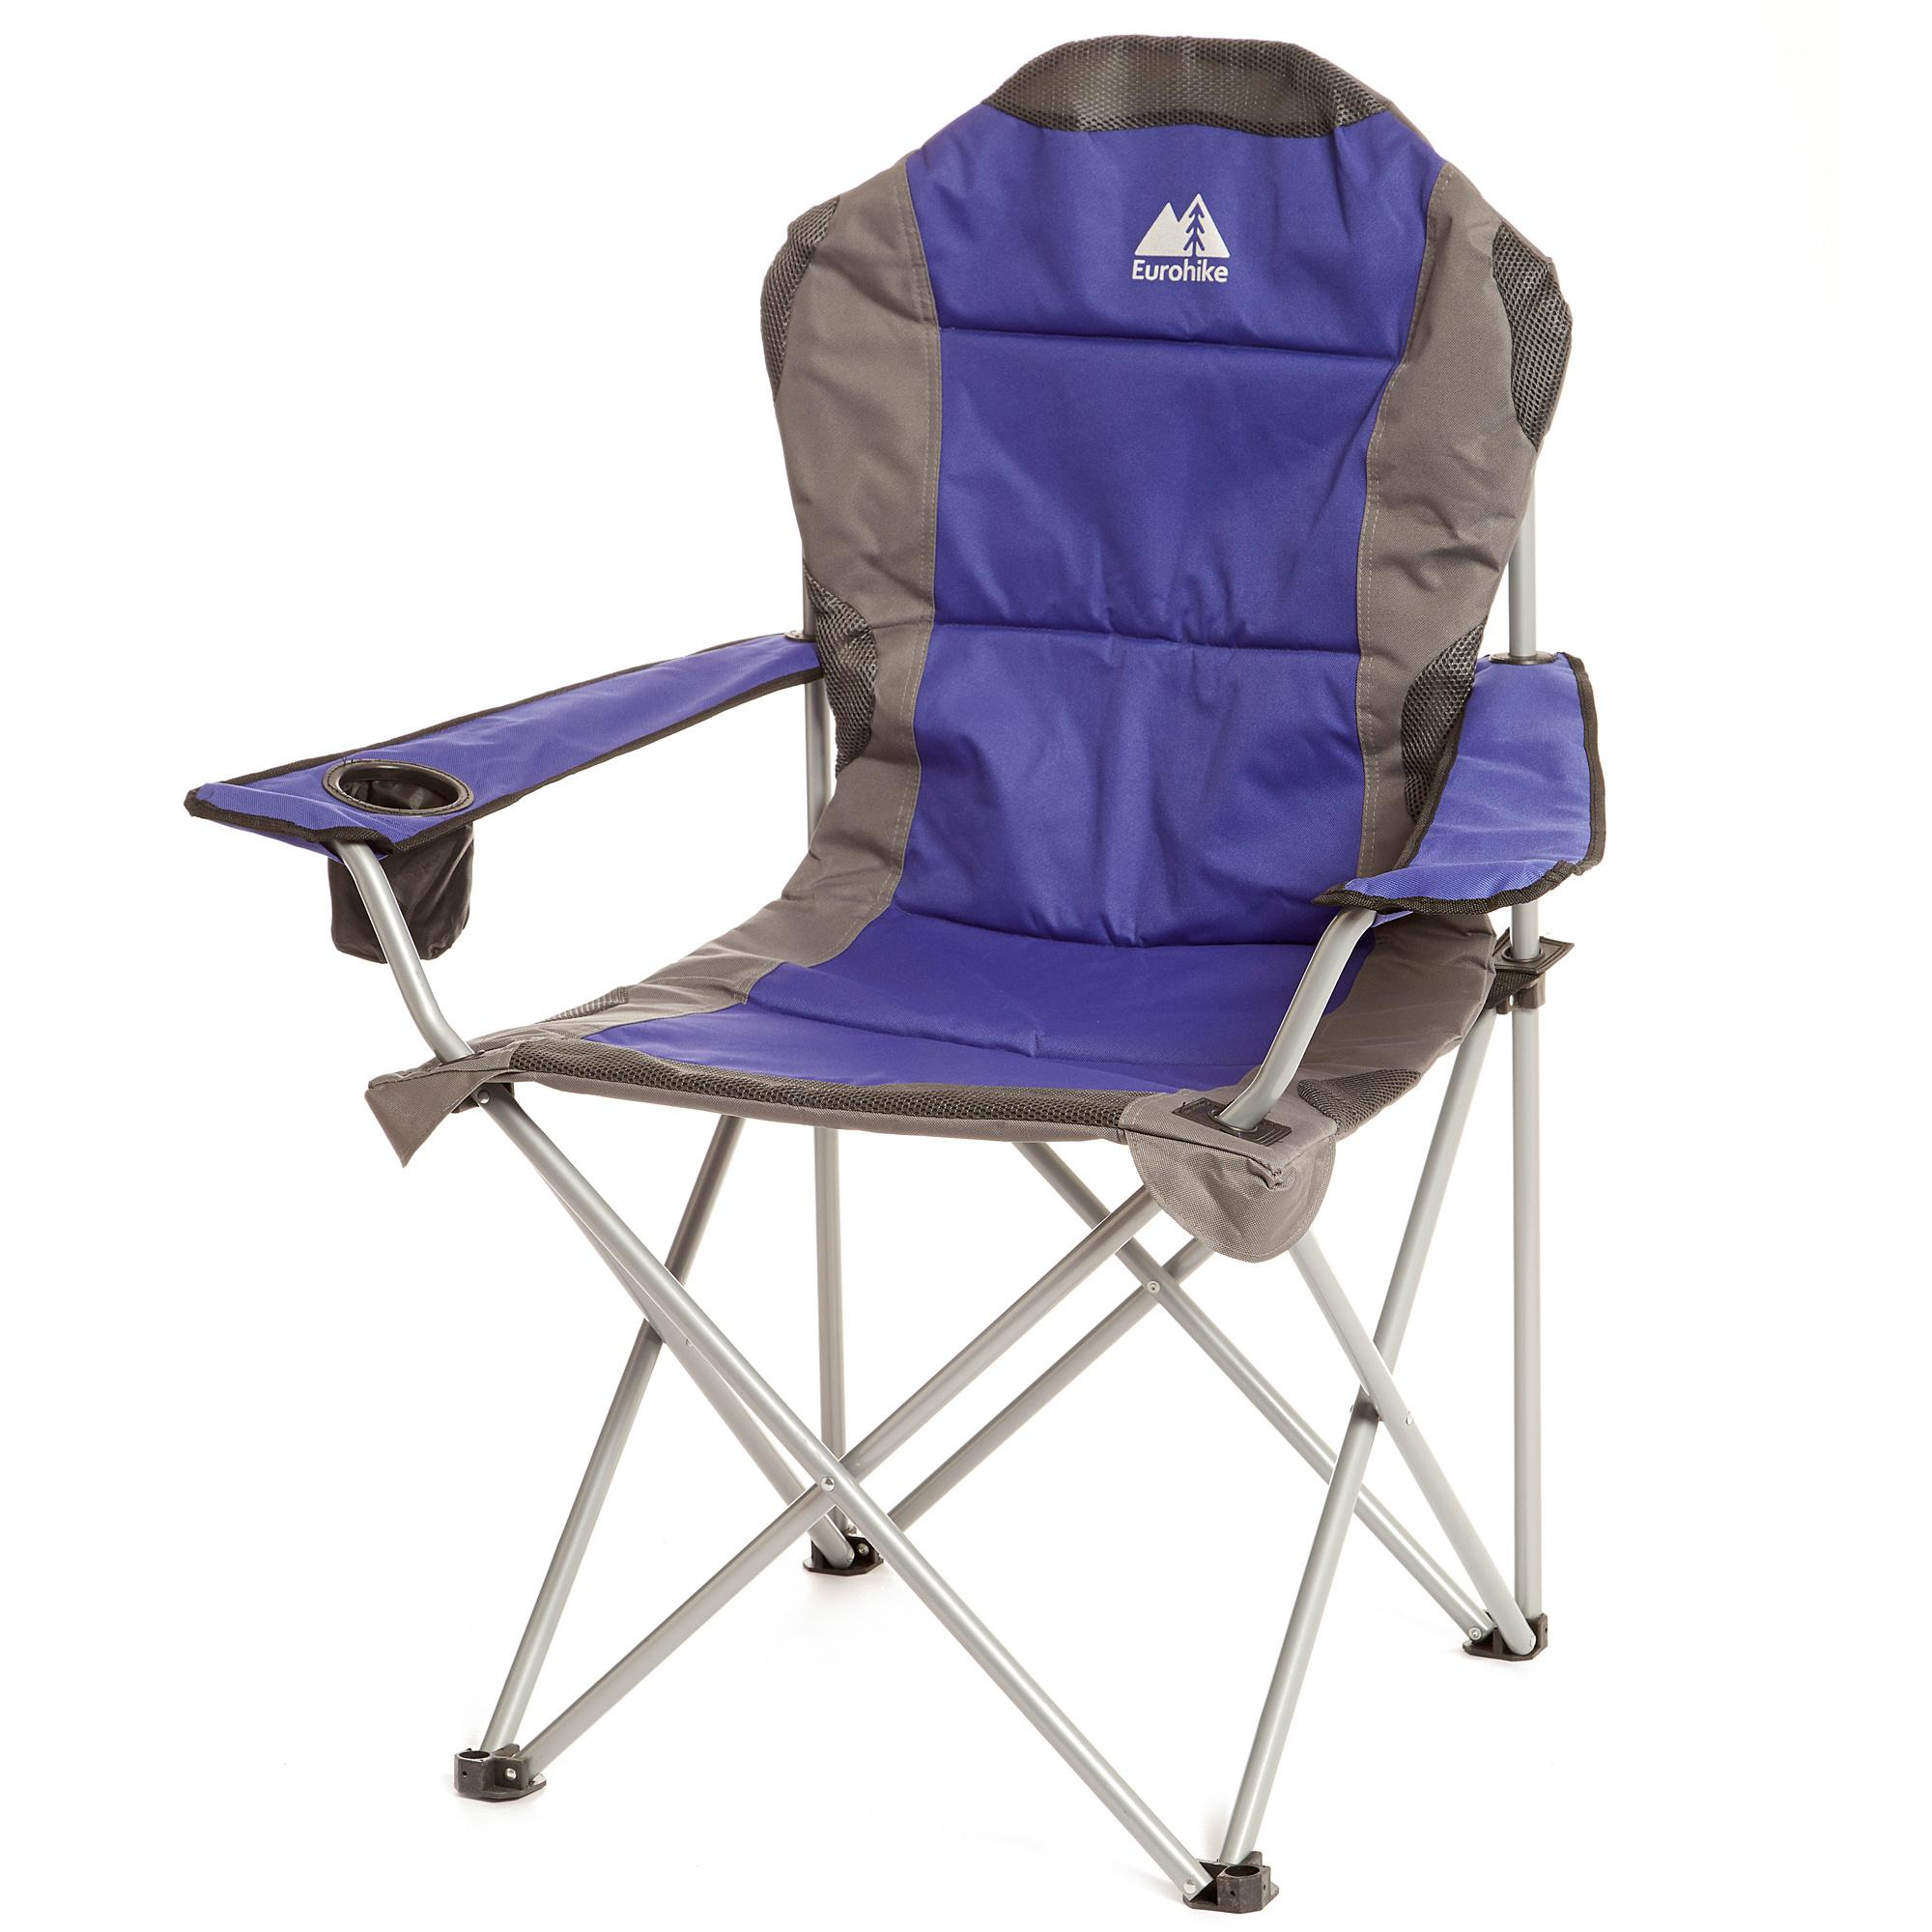 compact portable camping folding tour tubluechair ultraligh trekultra products with great beach e one ultralight chair bag camp chairs lightweight